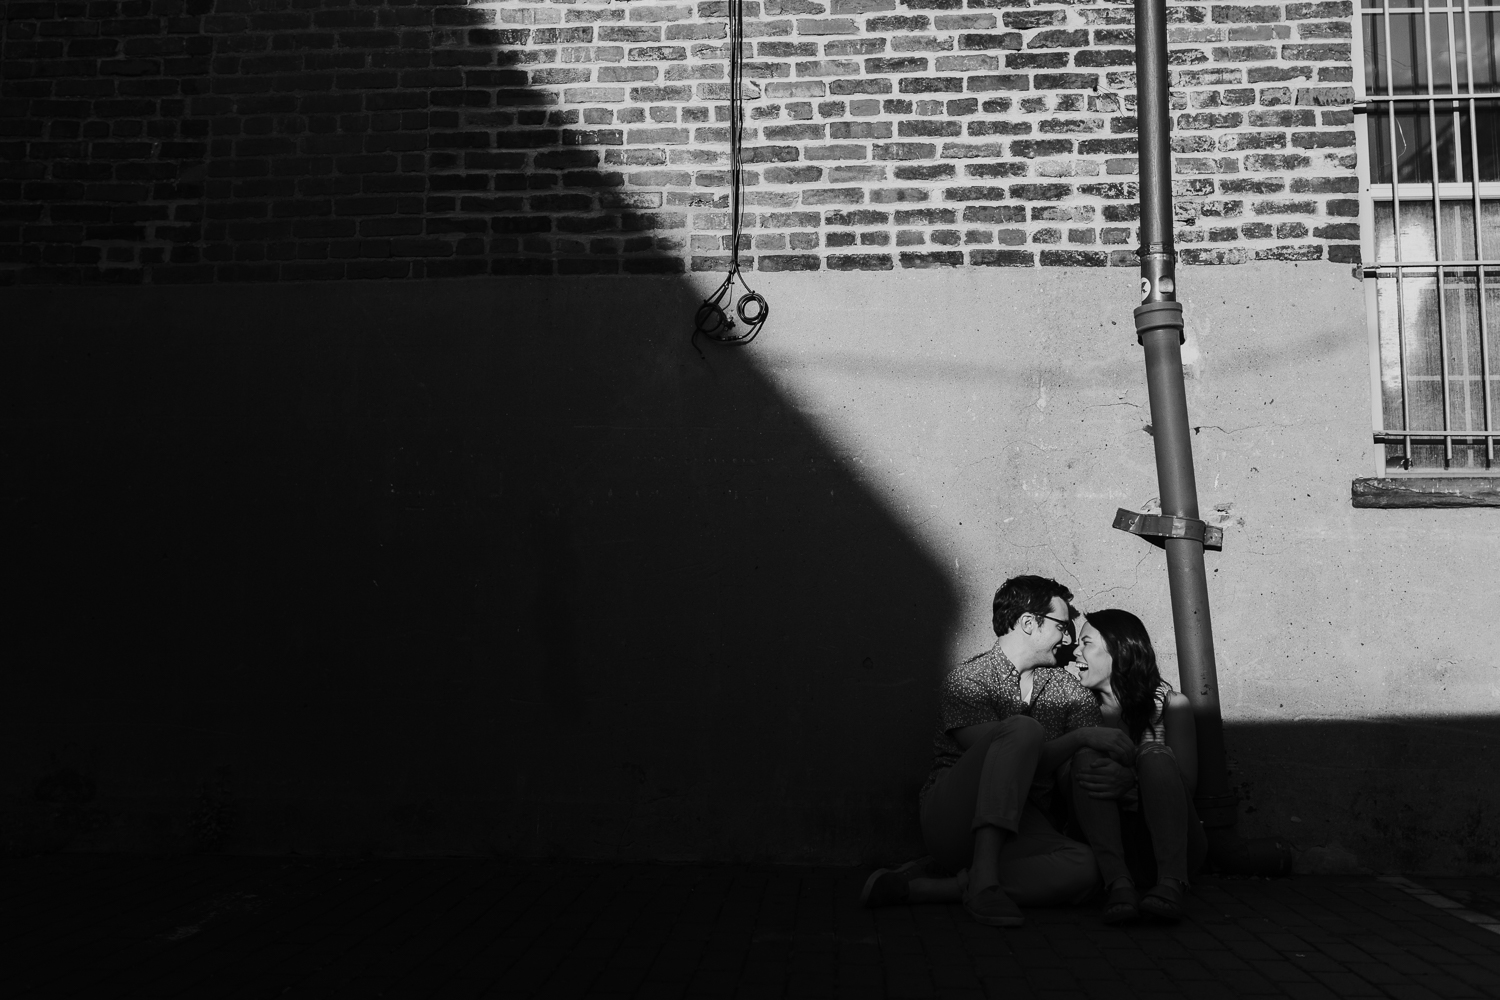 washington_dc_blagden_alley_engagement_photographer-16.jpg